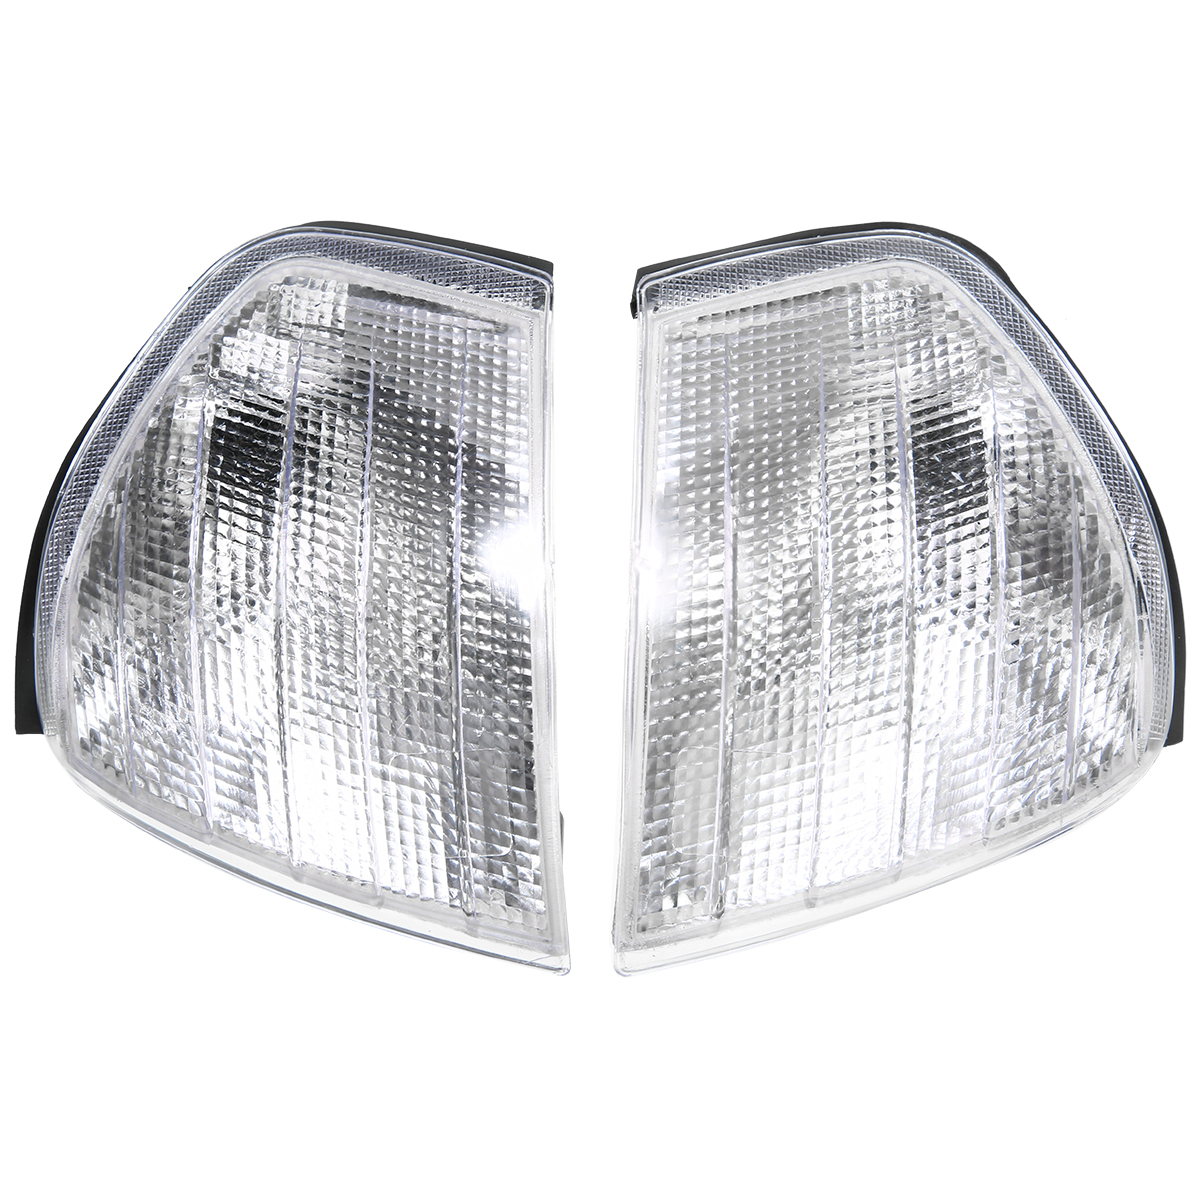 Image 5 - For Mercedes Benz C Class W202 1994 2000 1 Pair Clear Lens Turn Signal Corner Light Lamp Car Styling-in Signal Lamp from Automobiles & Motorcycles